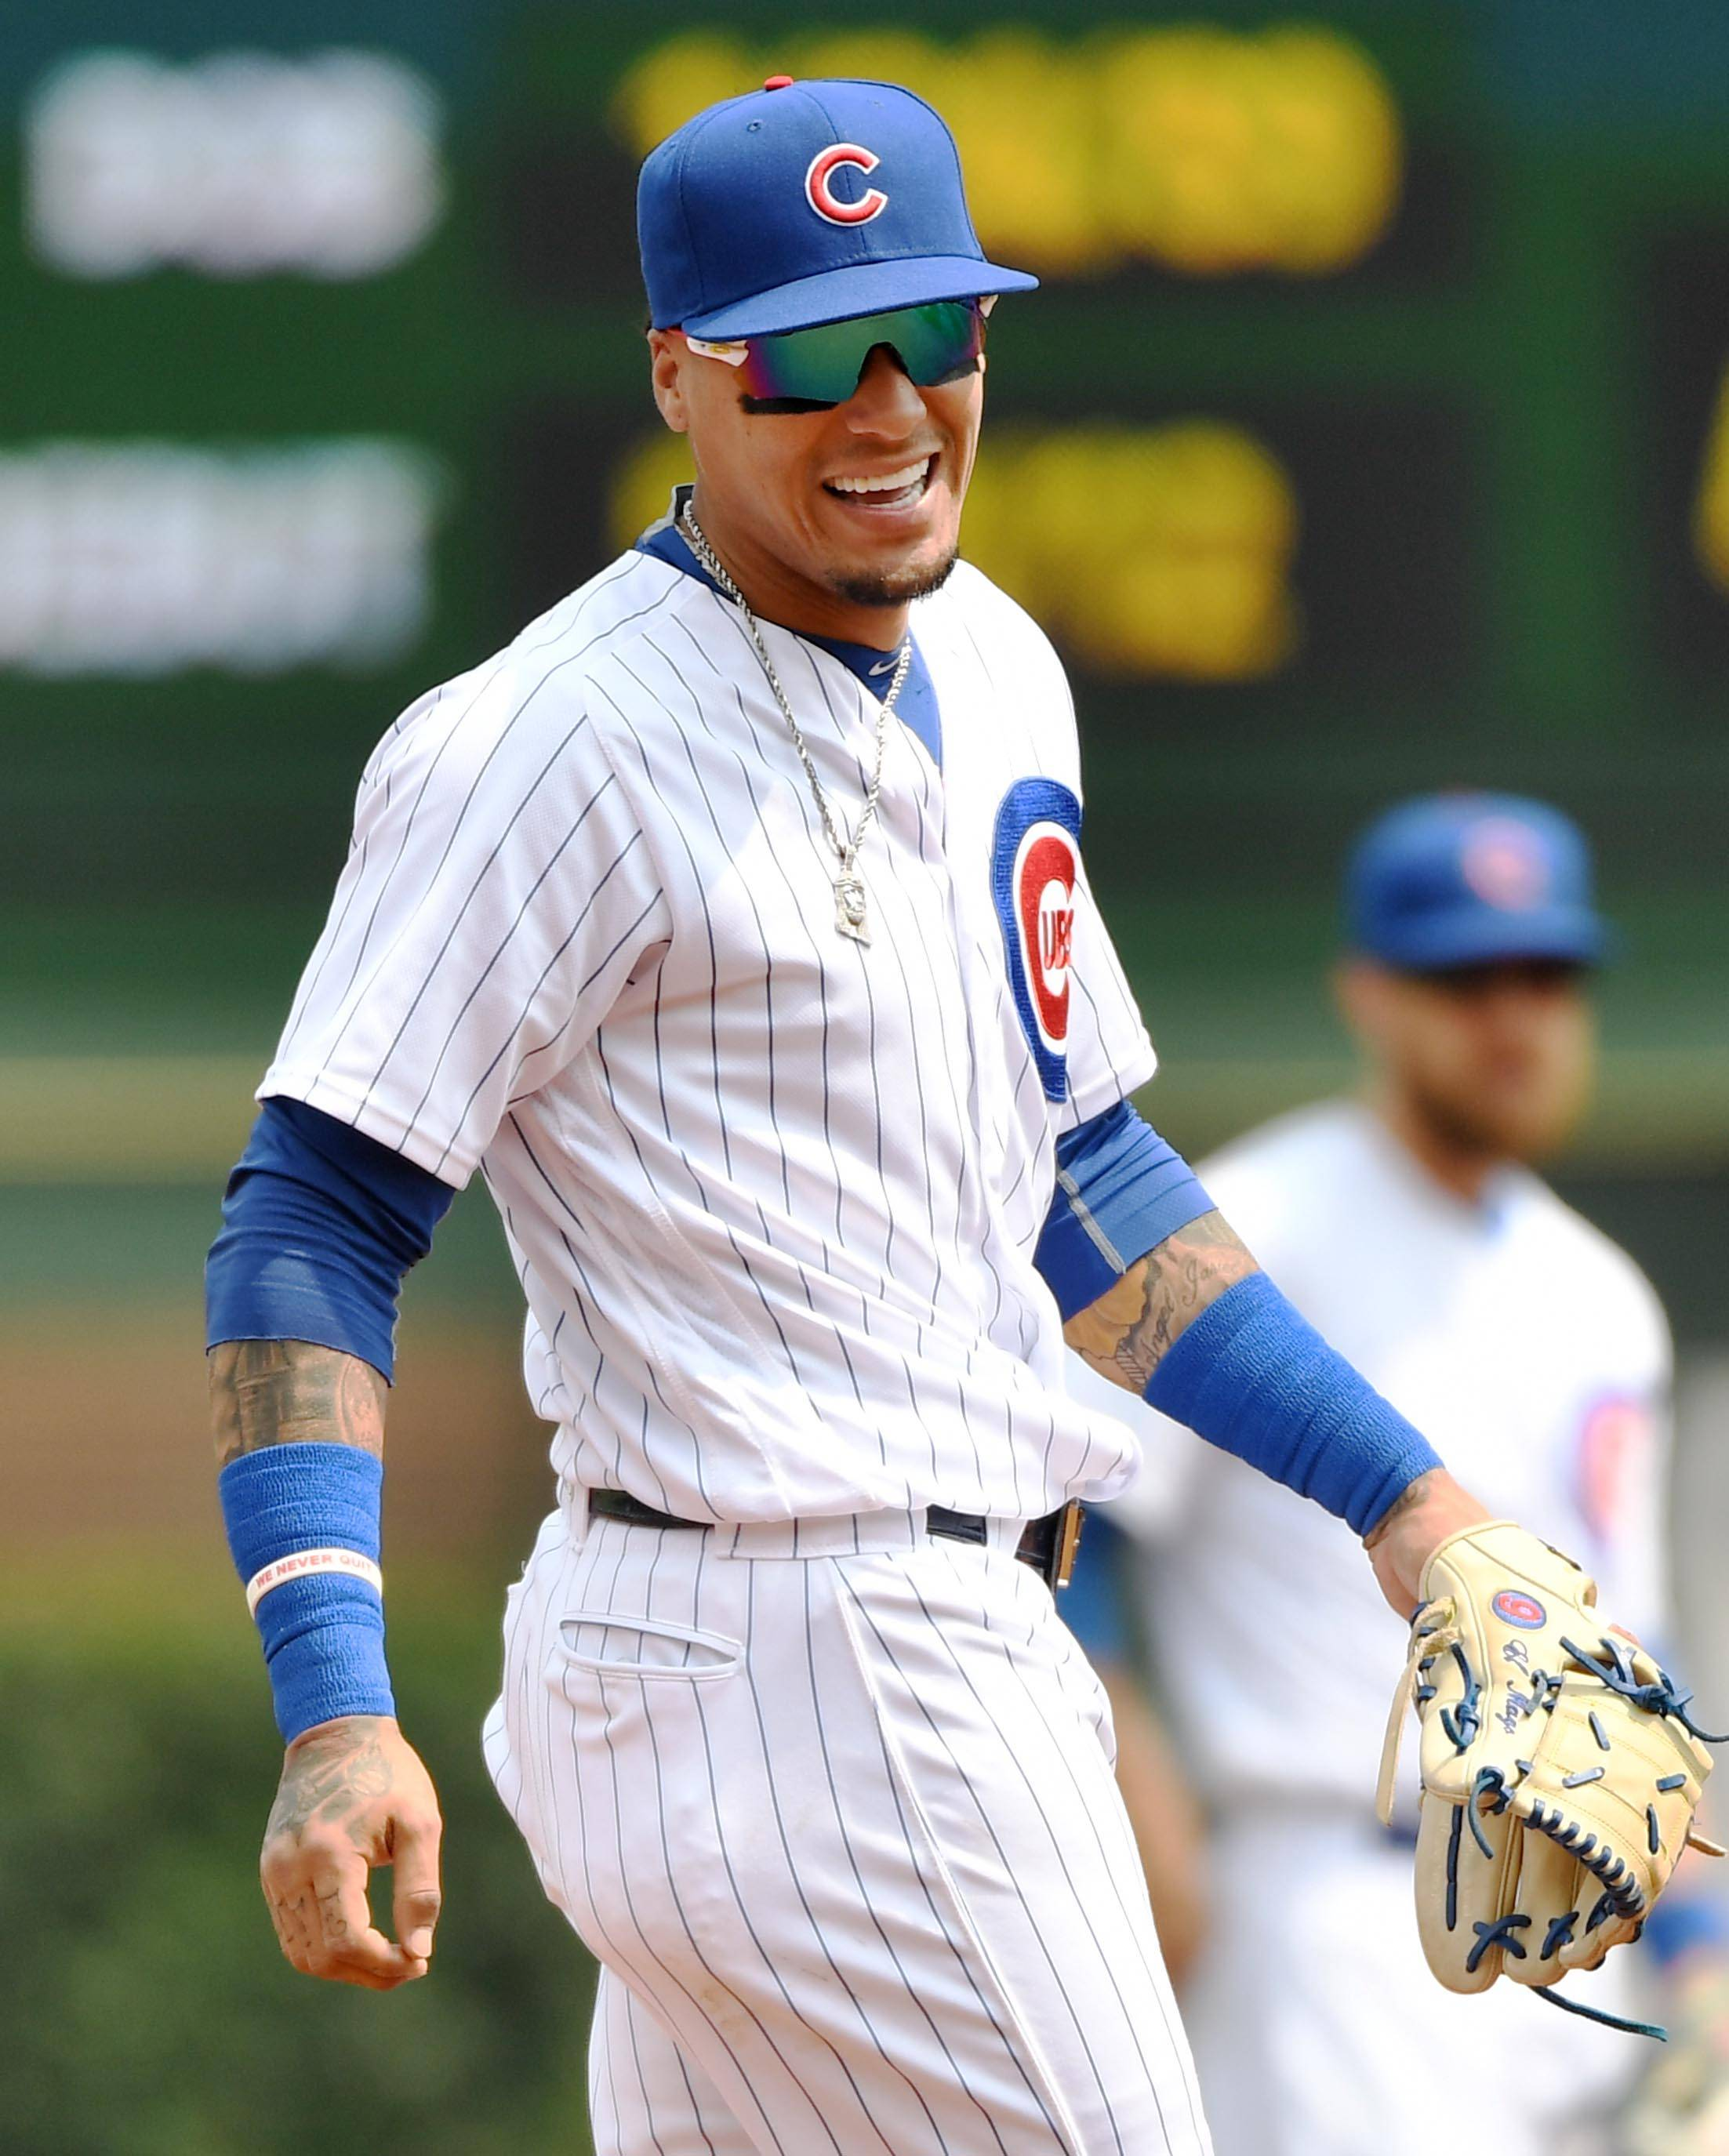 Cubs second baseman Javier Baez gets a significant raise in 2019.